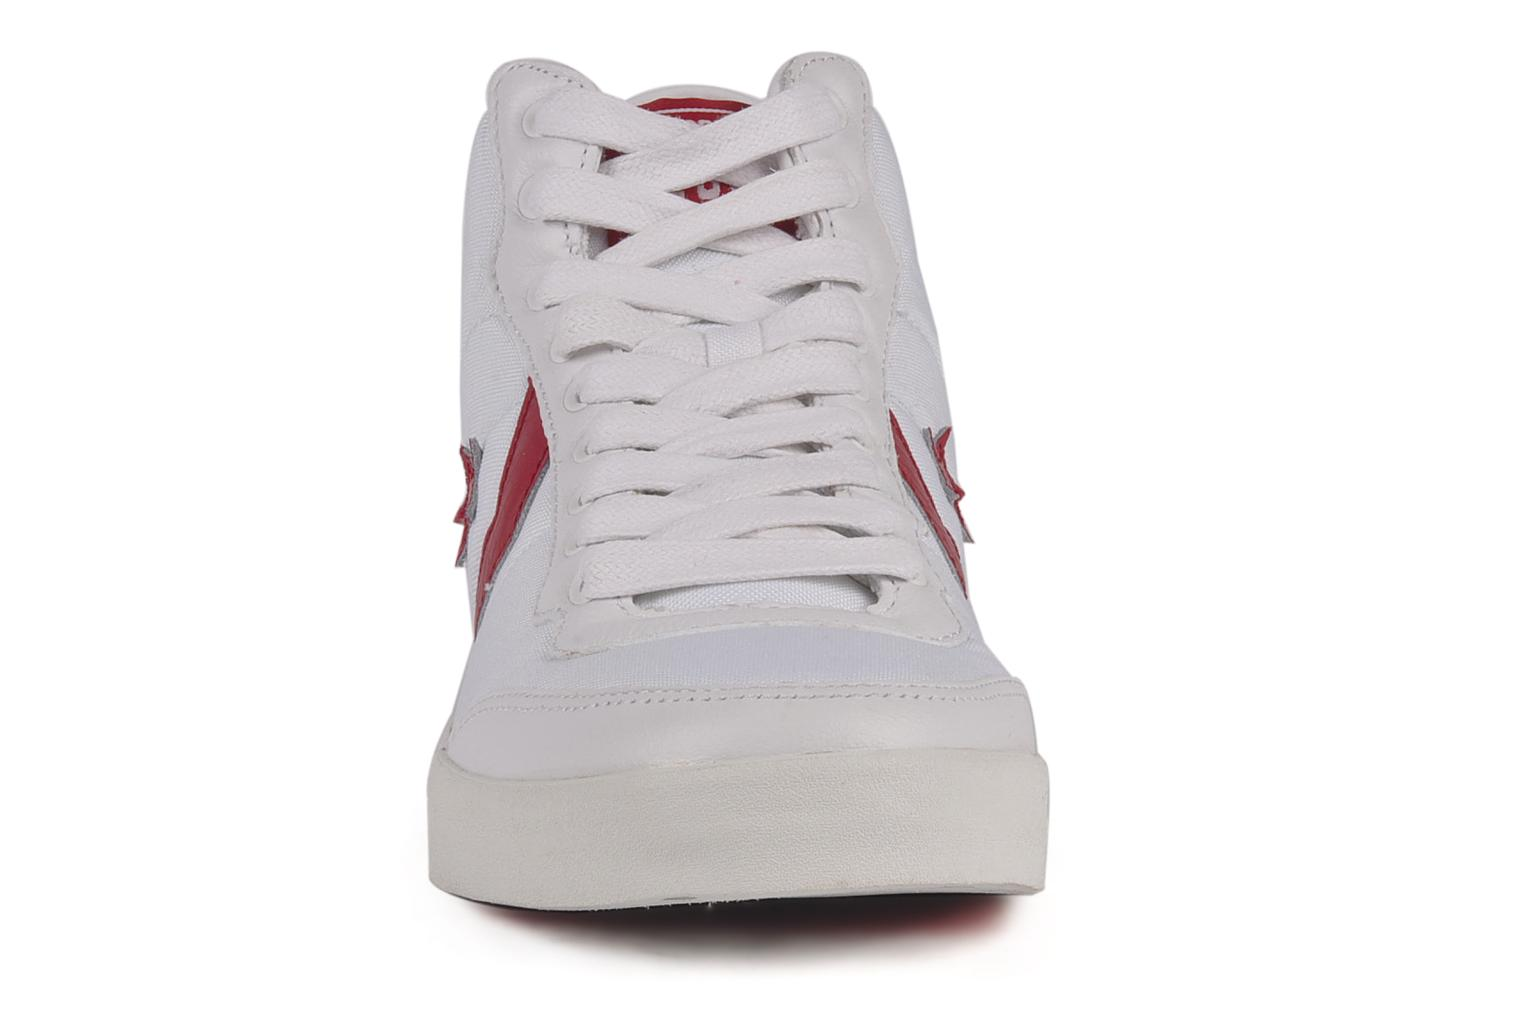 Converse Fastbreak 2 mid nyl m Trainers in White at ...